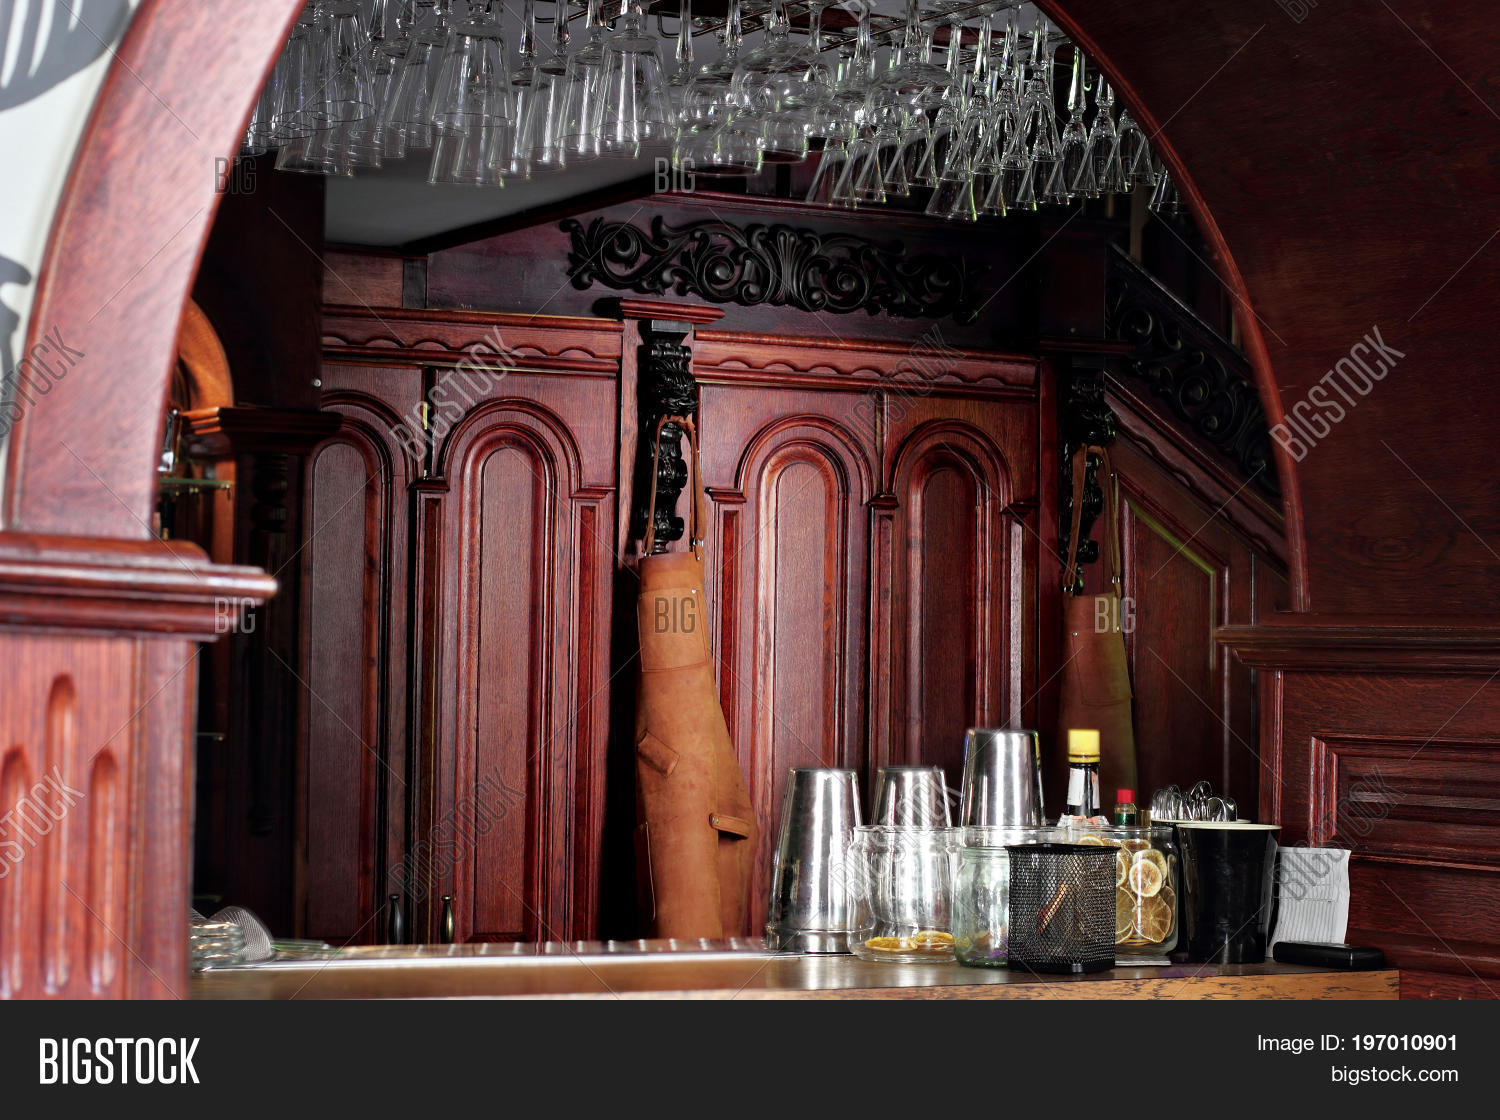 Classic Bar Counter Image & Photo (Free Trial) | Bigstock